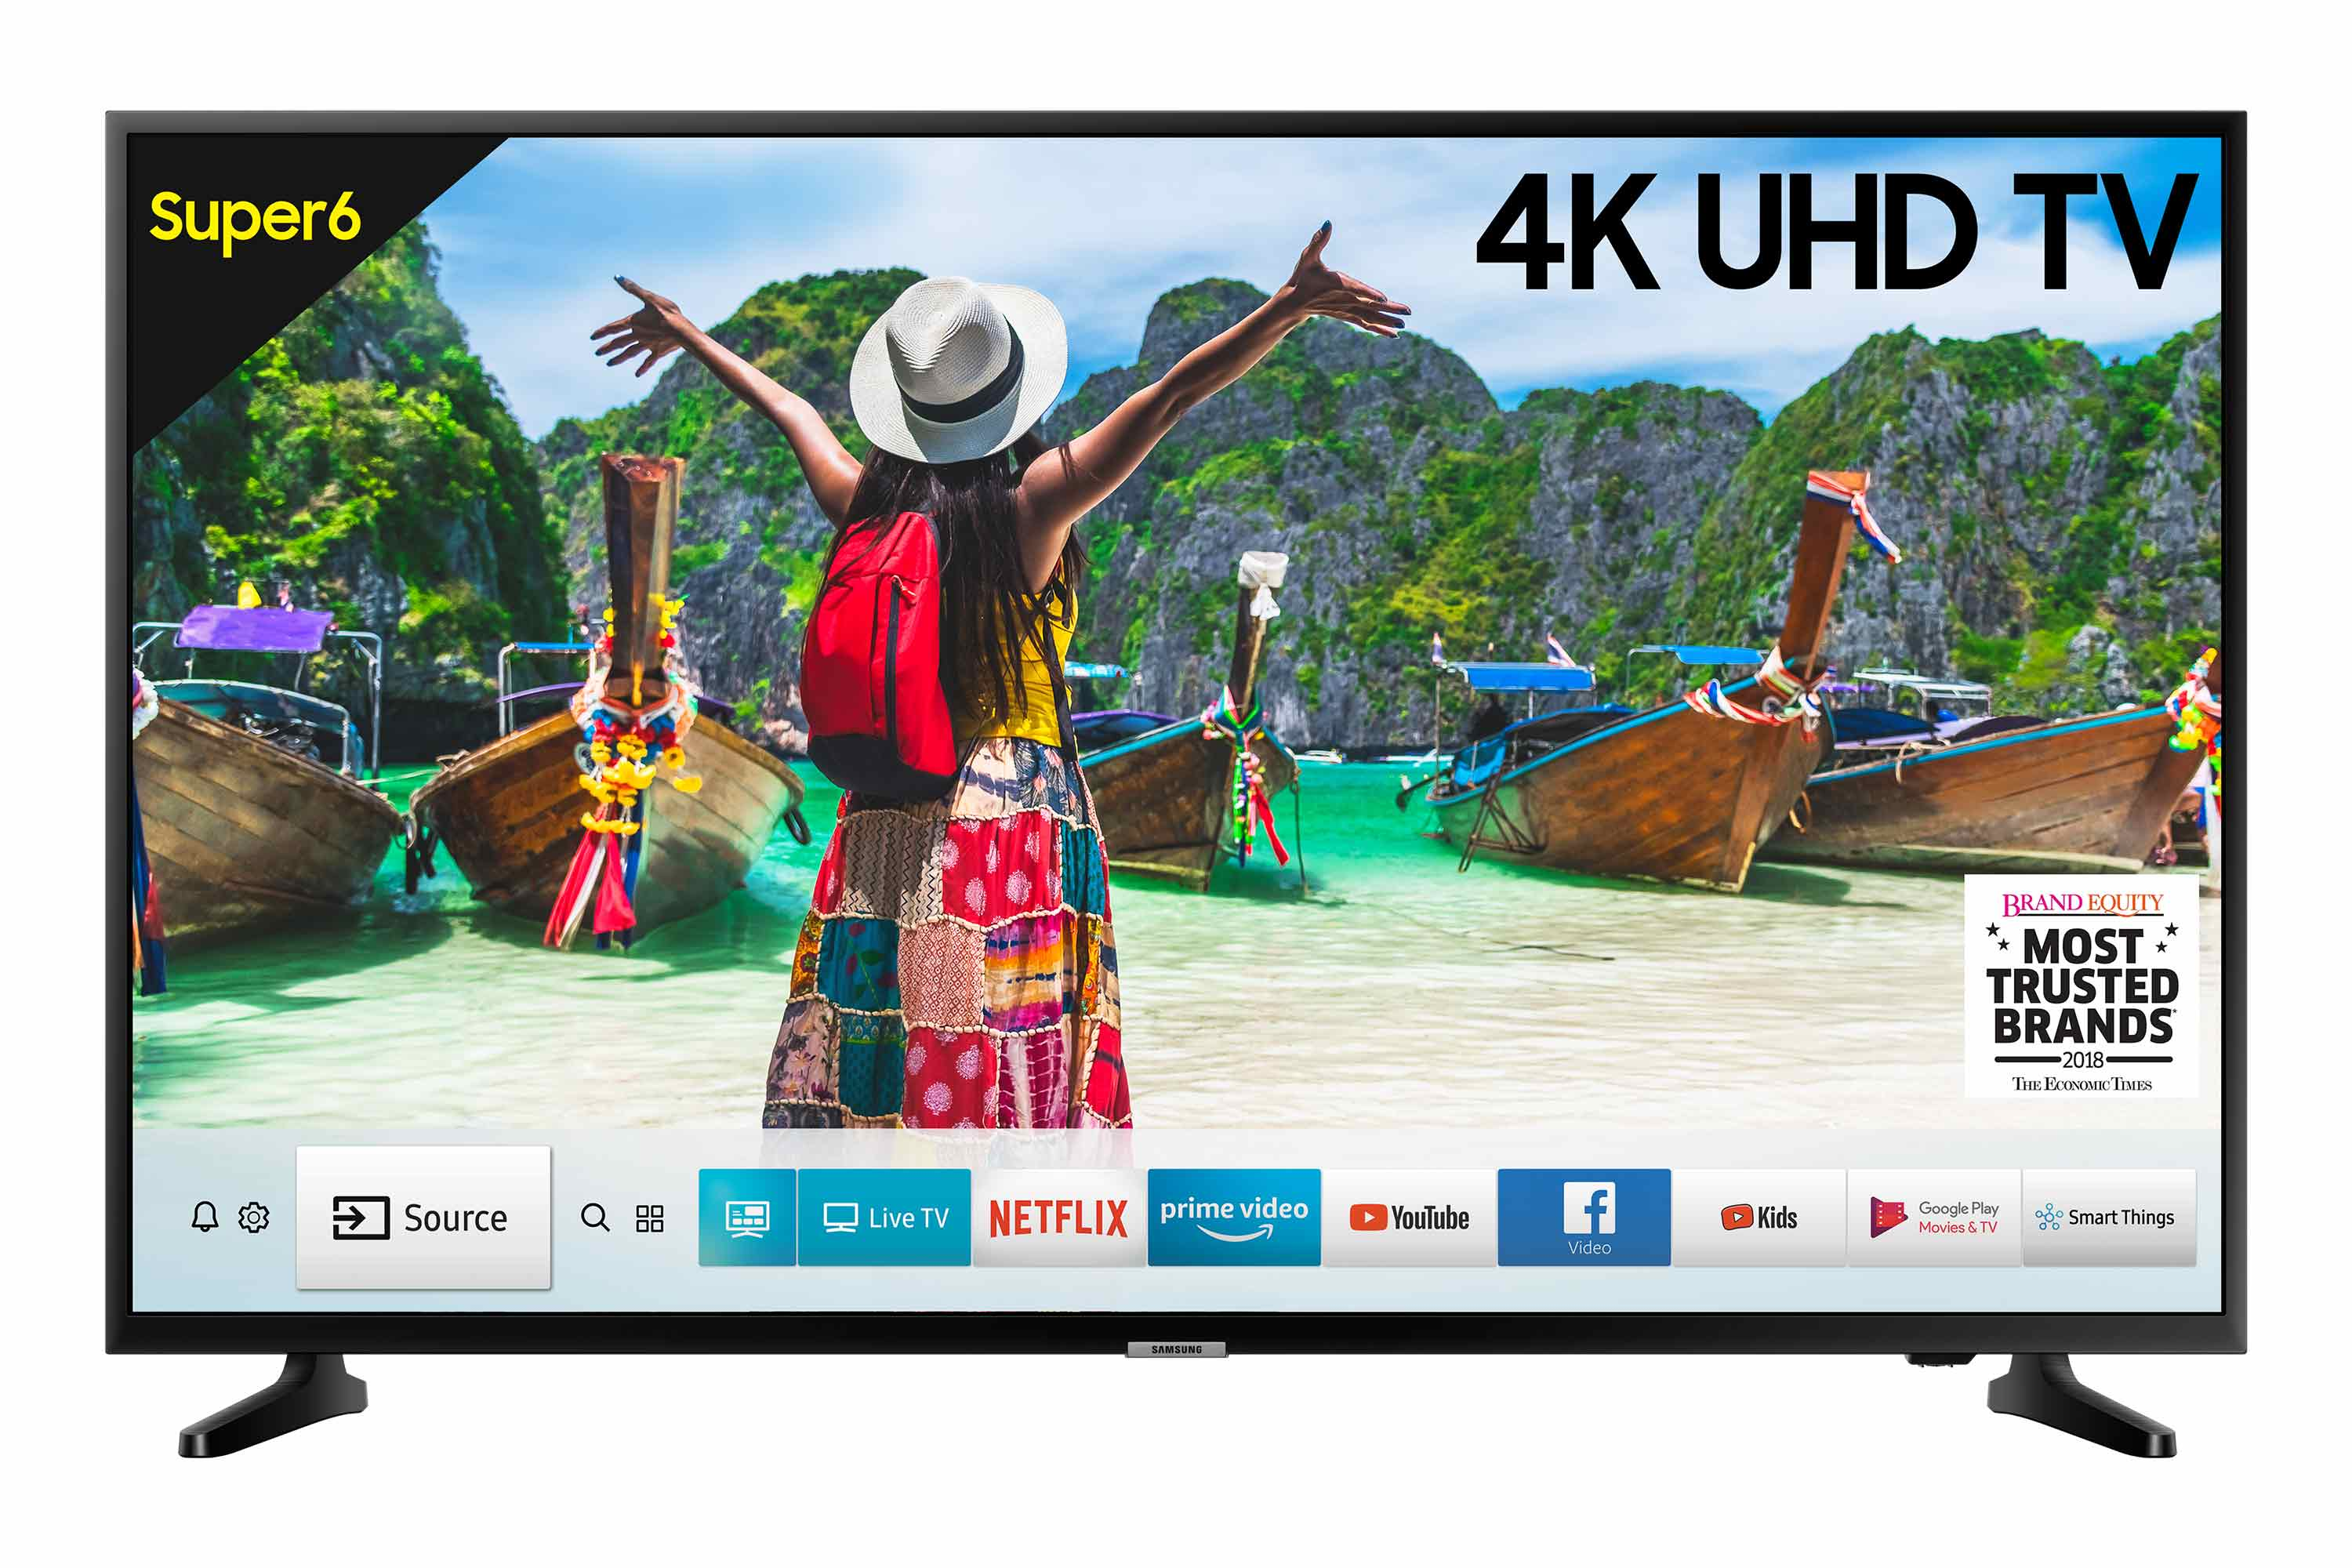 Samsung 43 Inch (108cm) NU6100 Ultra HD (4K) LED Smart TV